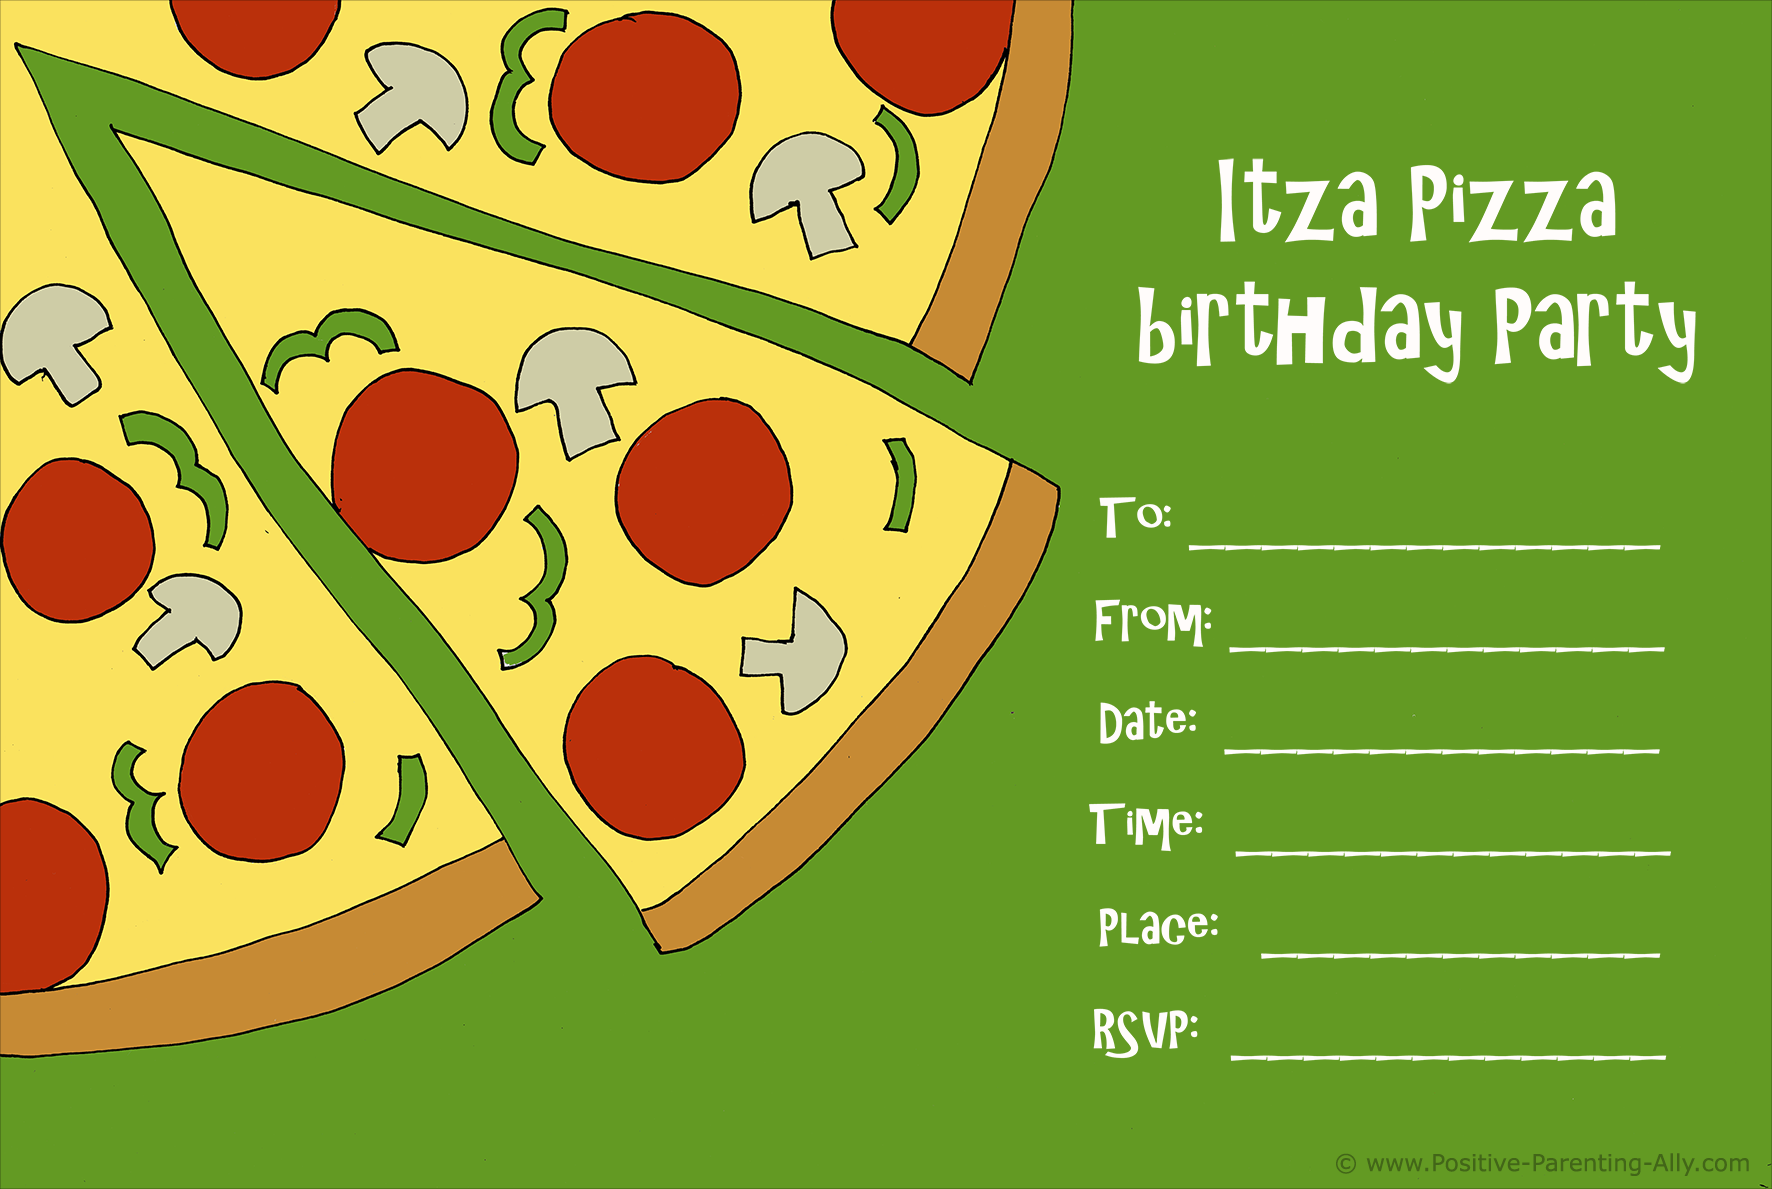 Printable pizza birthday party invitation.